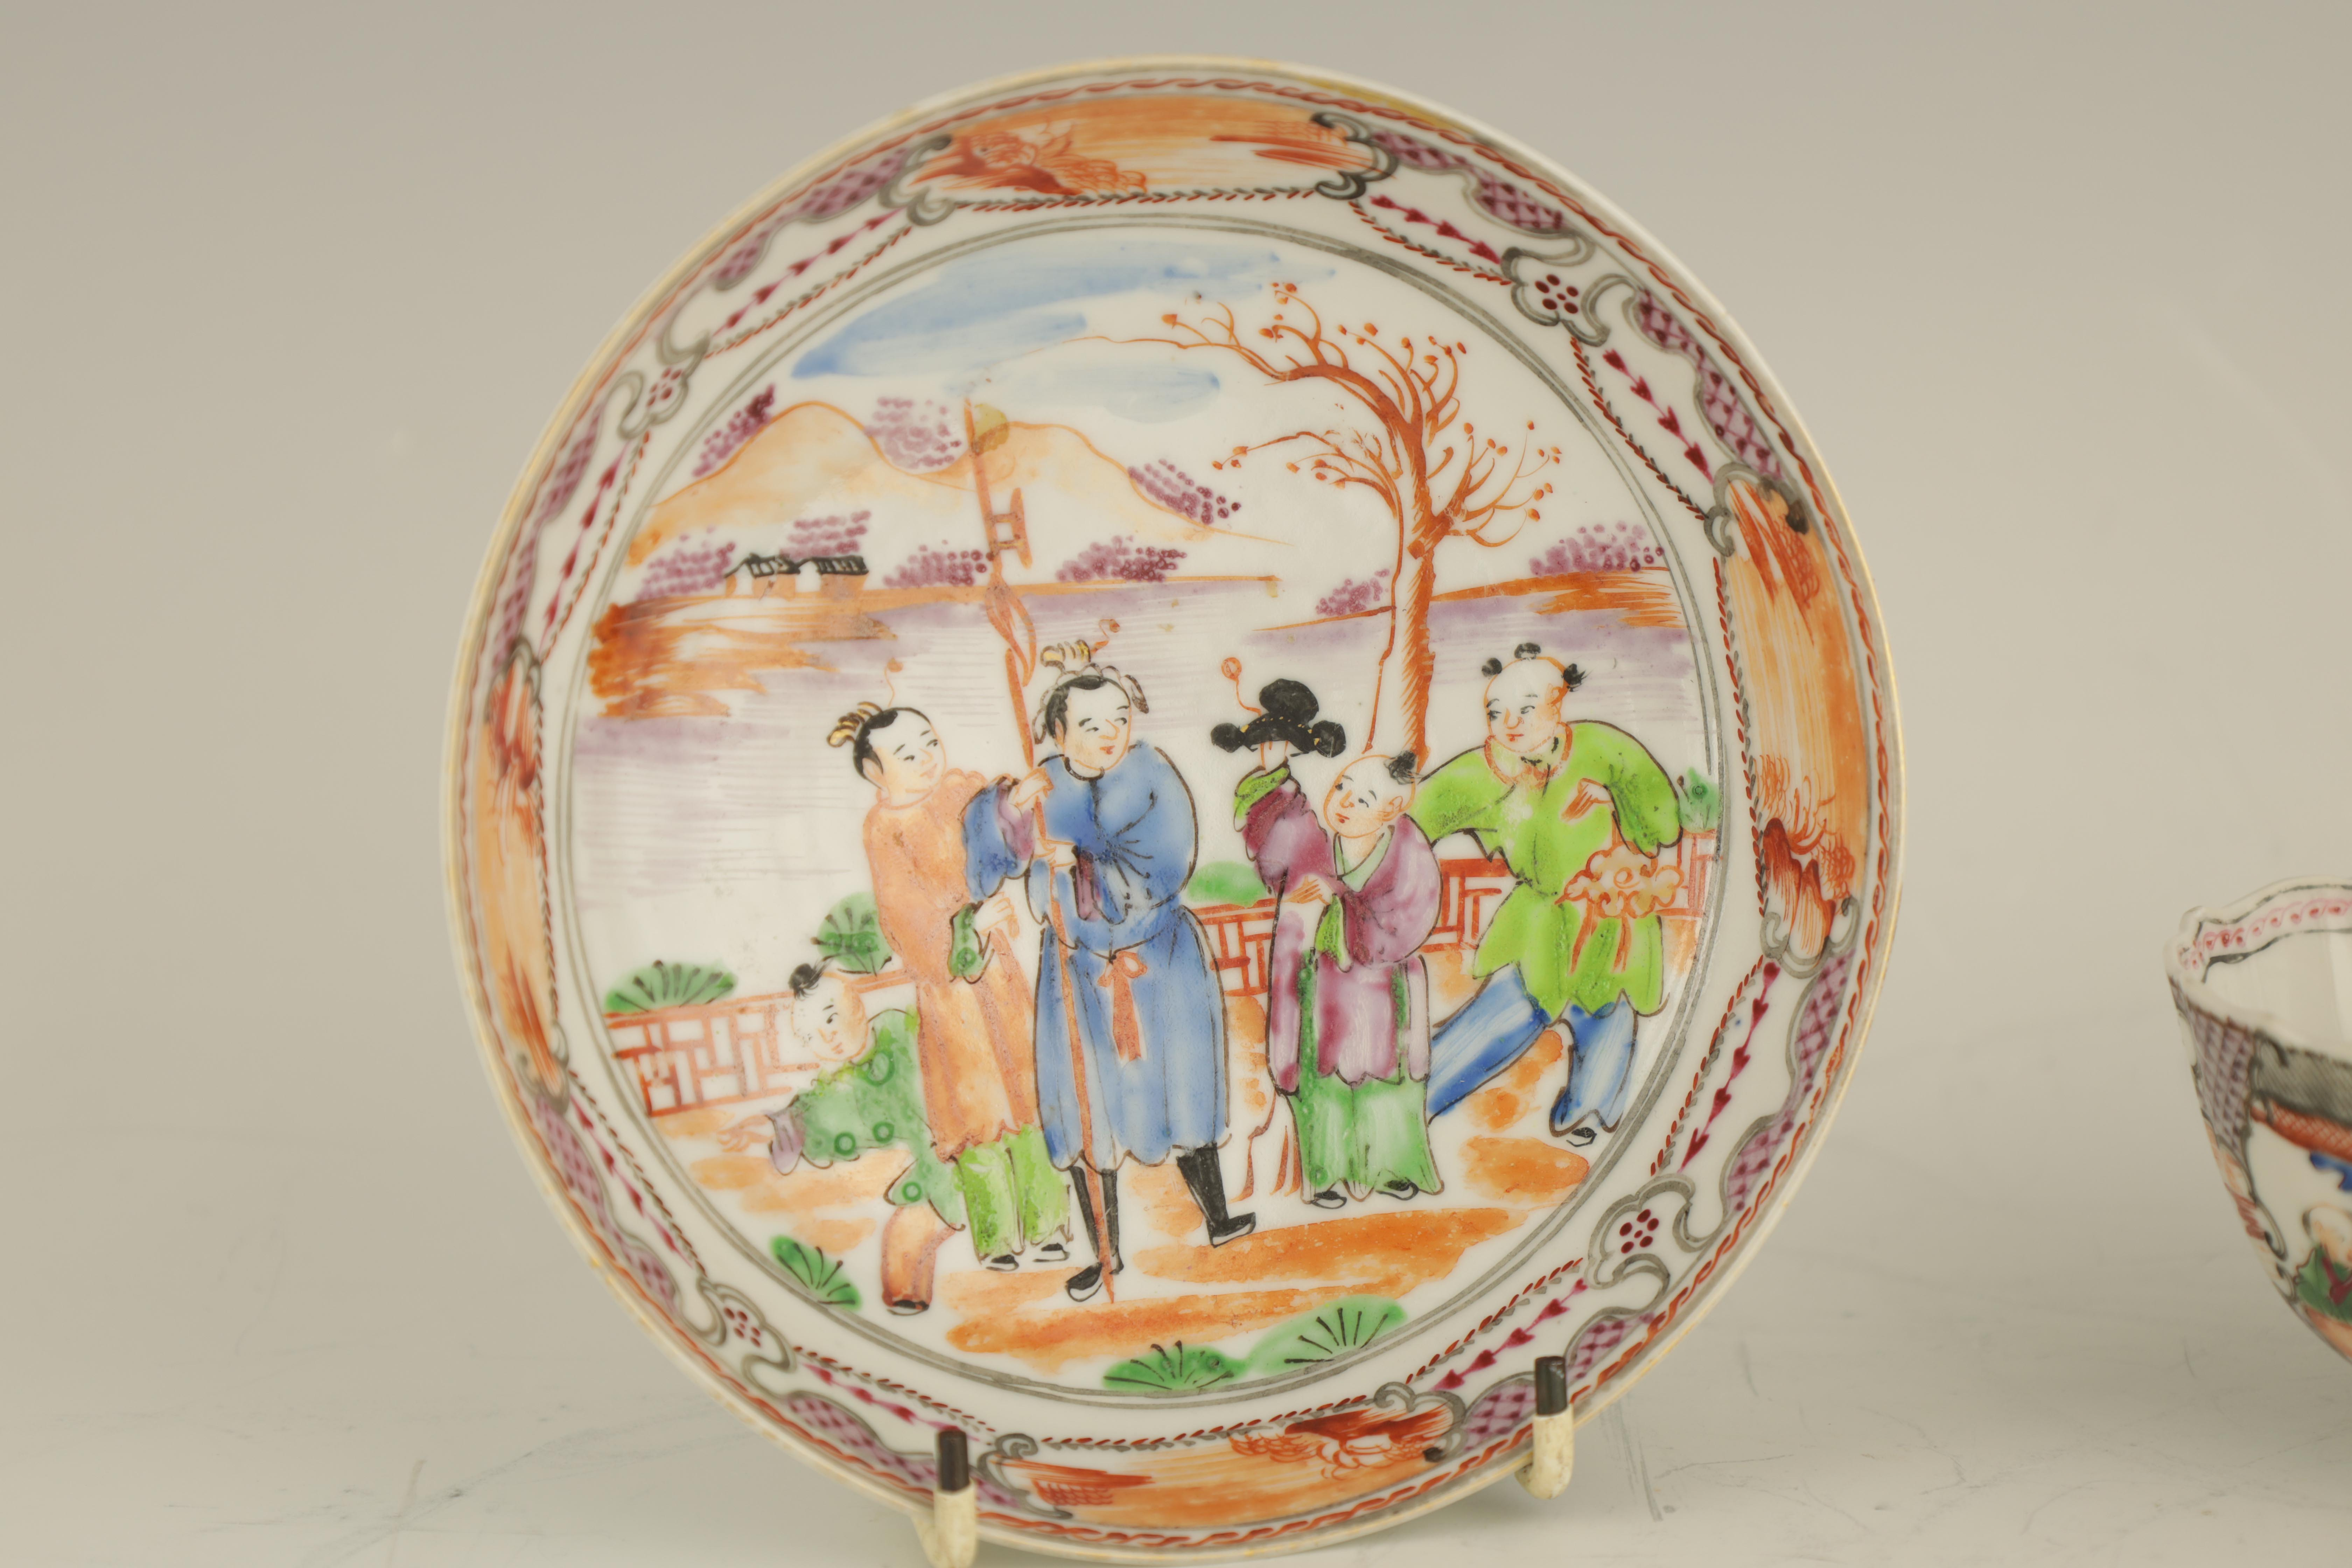 AN EARLY 19TH CENTURY NEW HALL PORCELAIN TEA CUP AND SAUCER decorated in 'The Boy in the Window' - Image 3 of 7